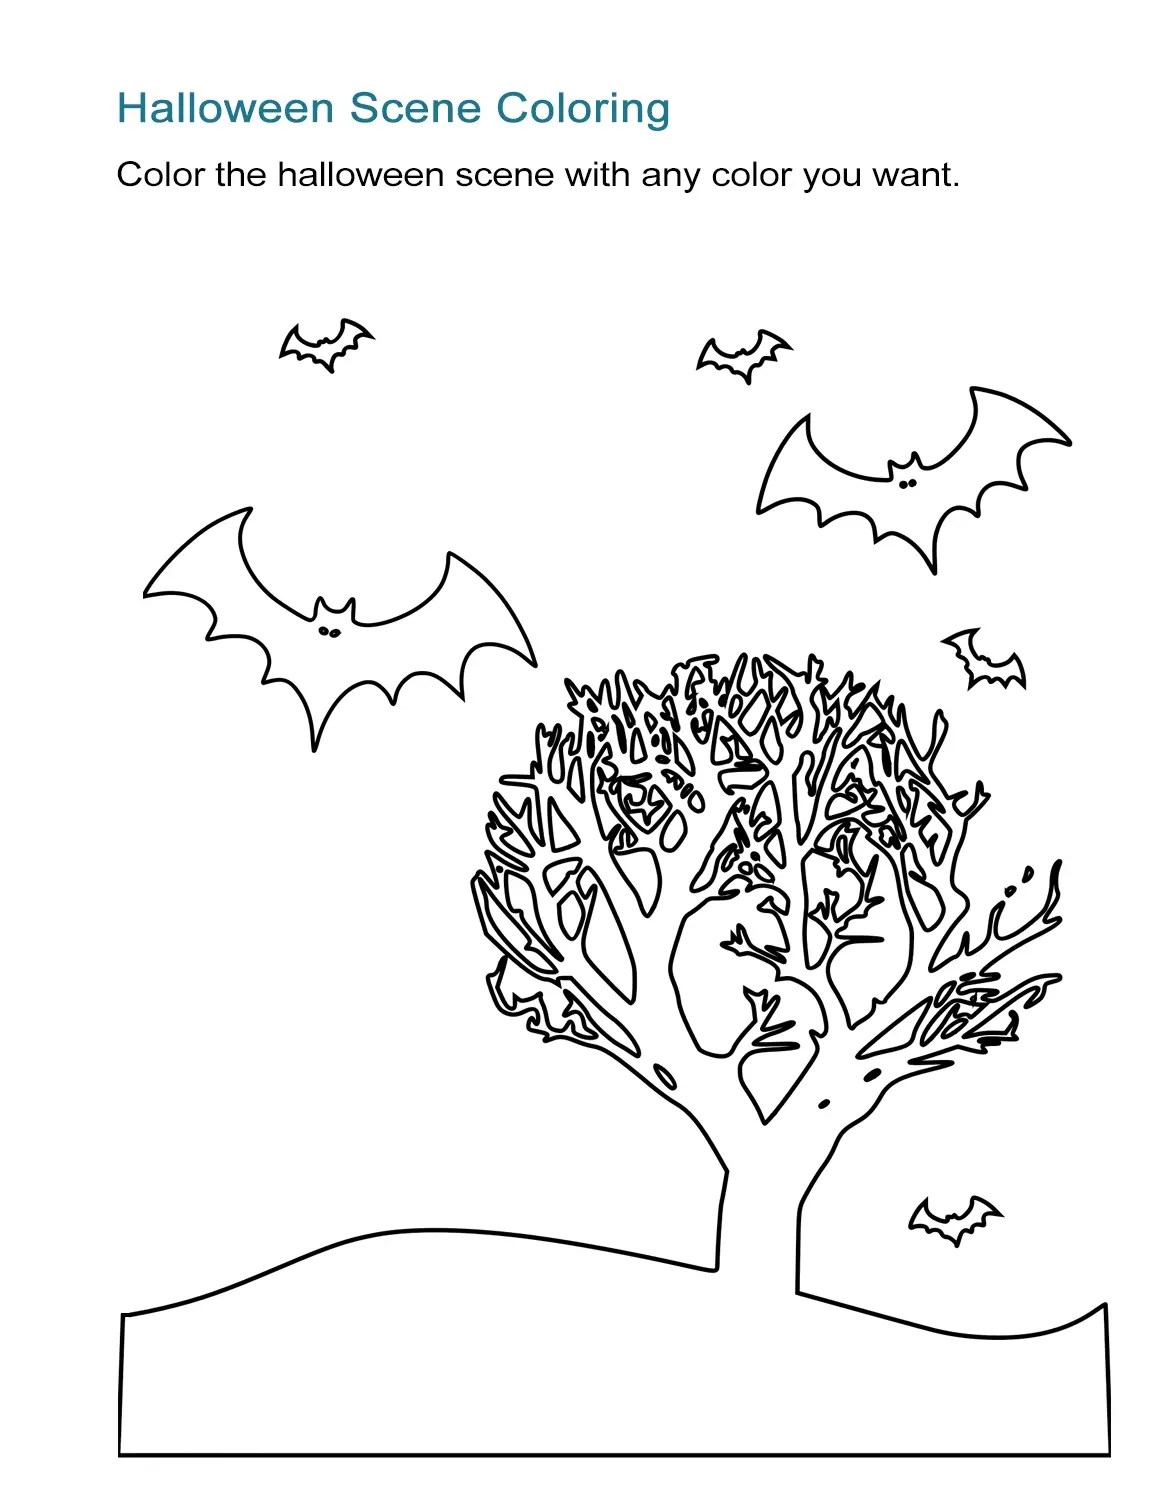 10 Halloween Coloring Sheets Free And Print Ready